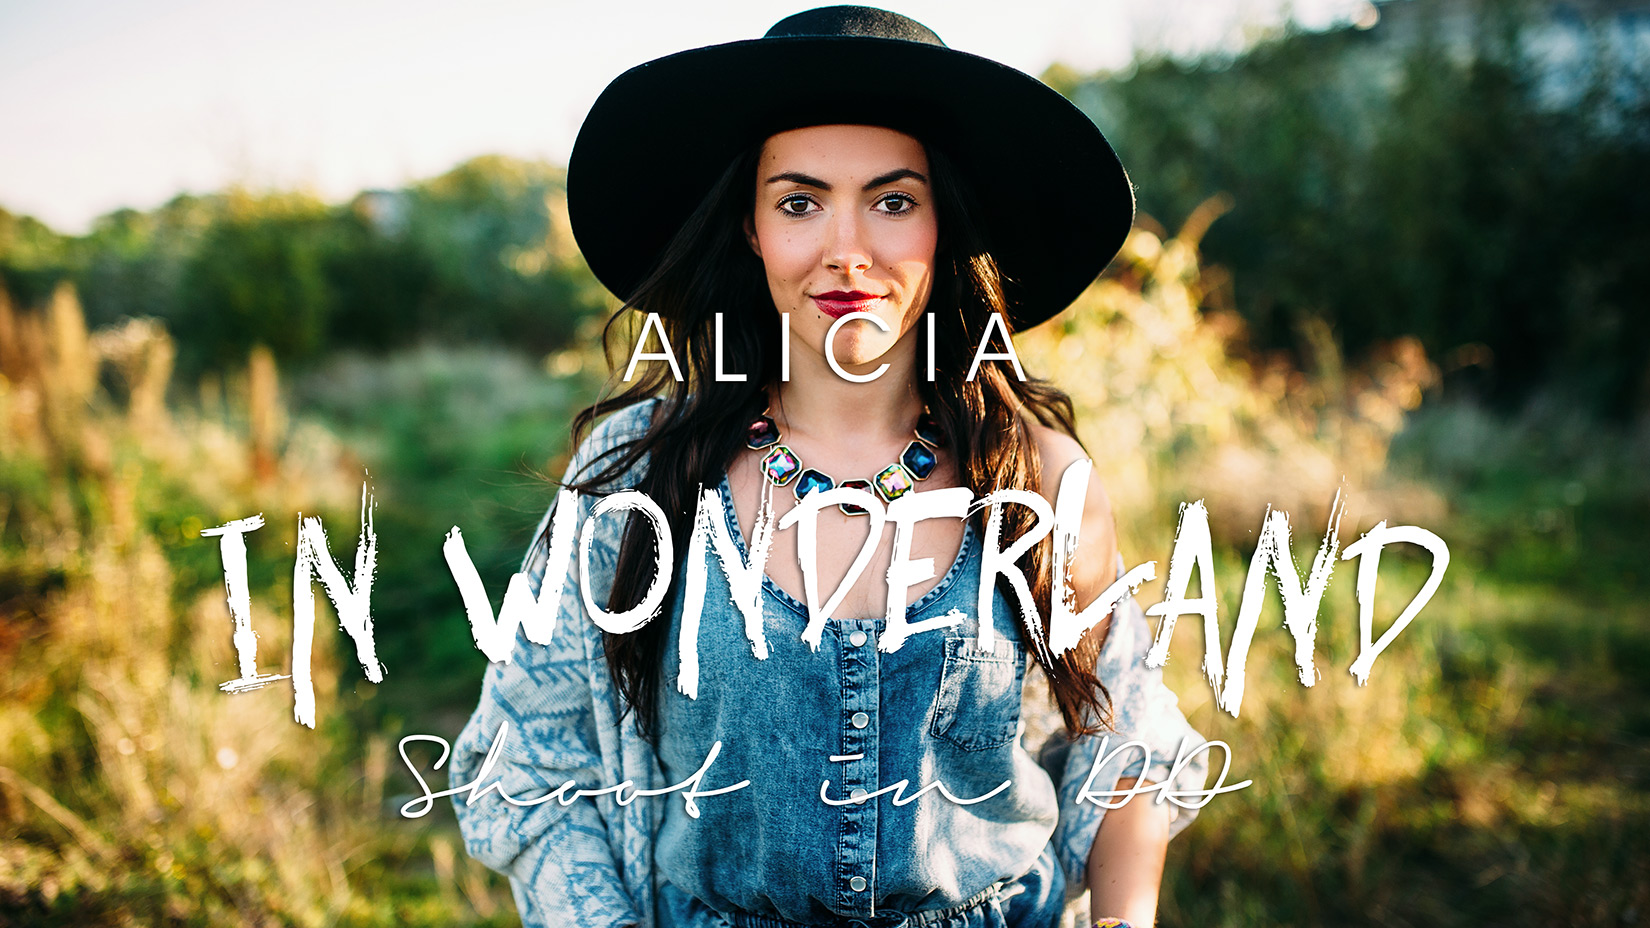 Alicia in Wonderland Shooting